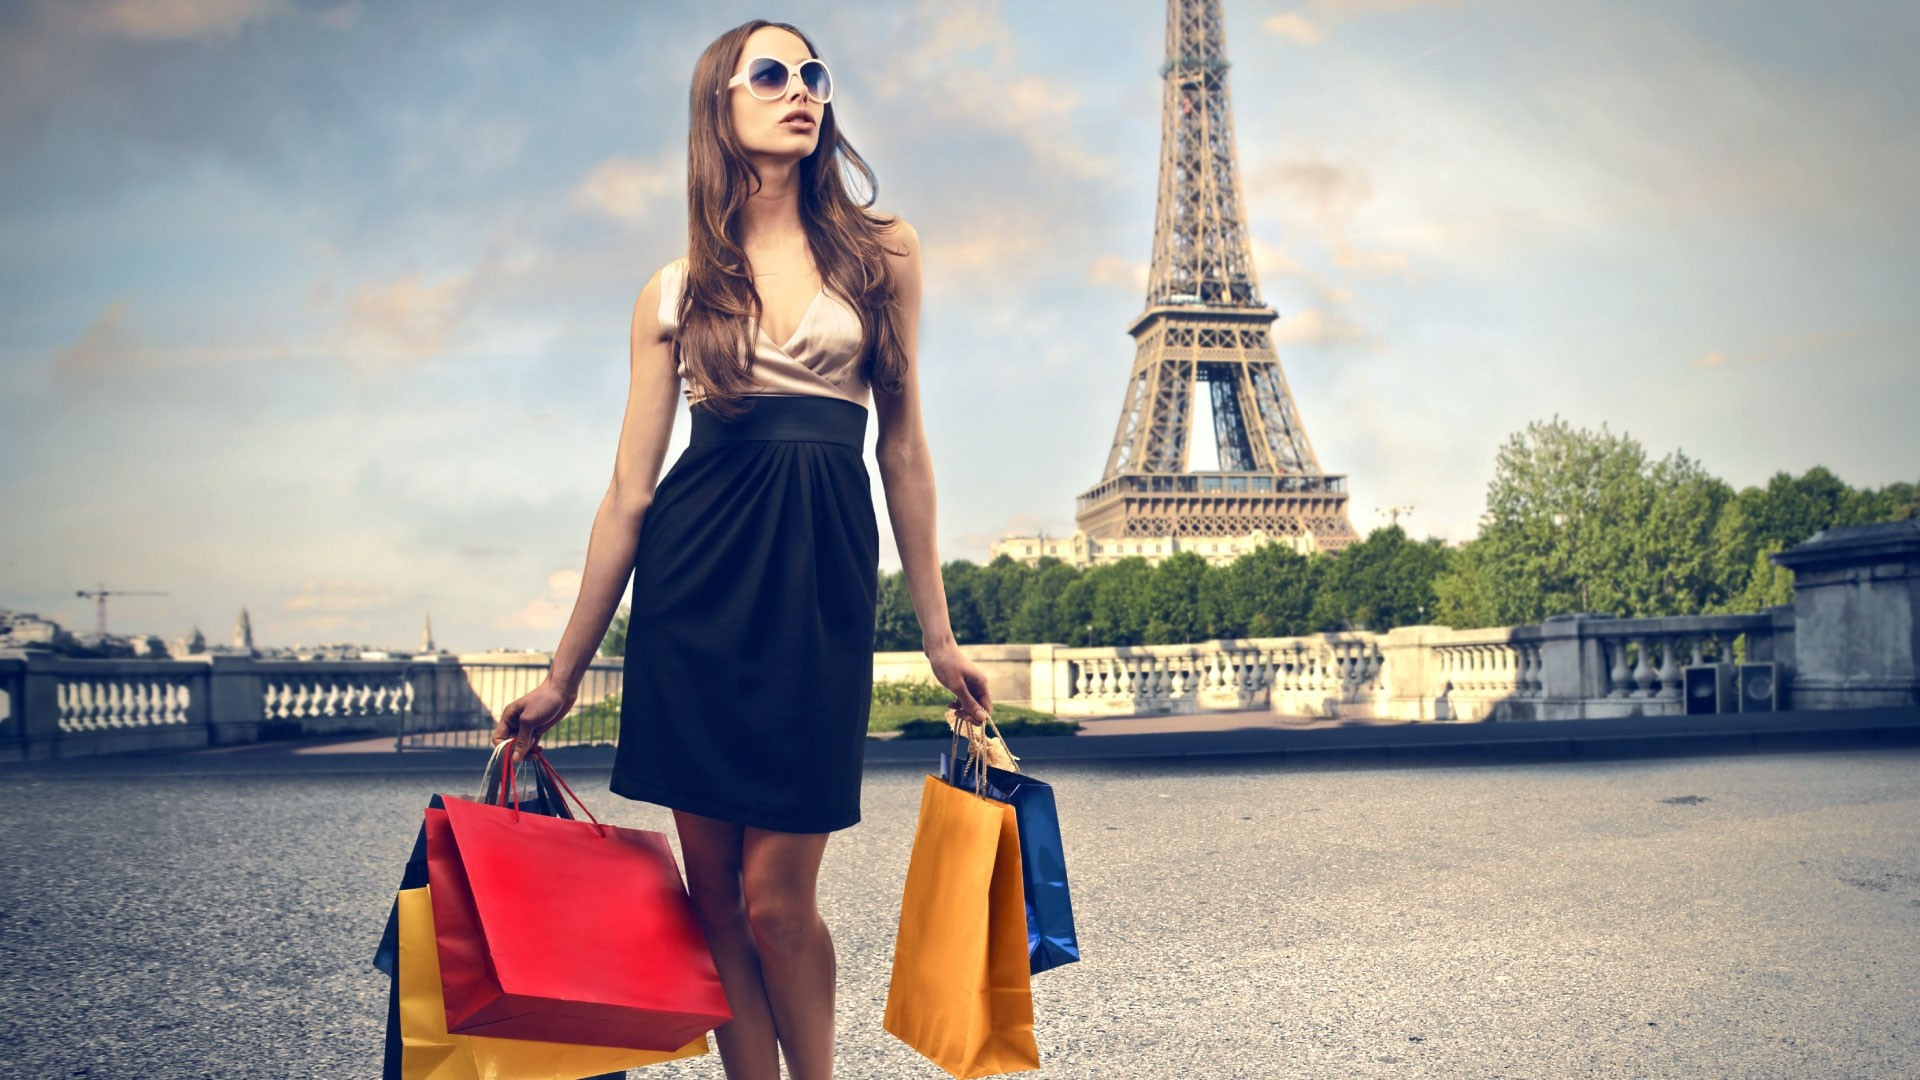 Shopping Free Wallpaper and Background